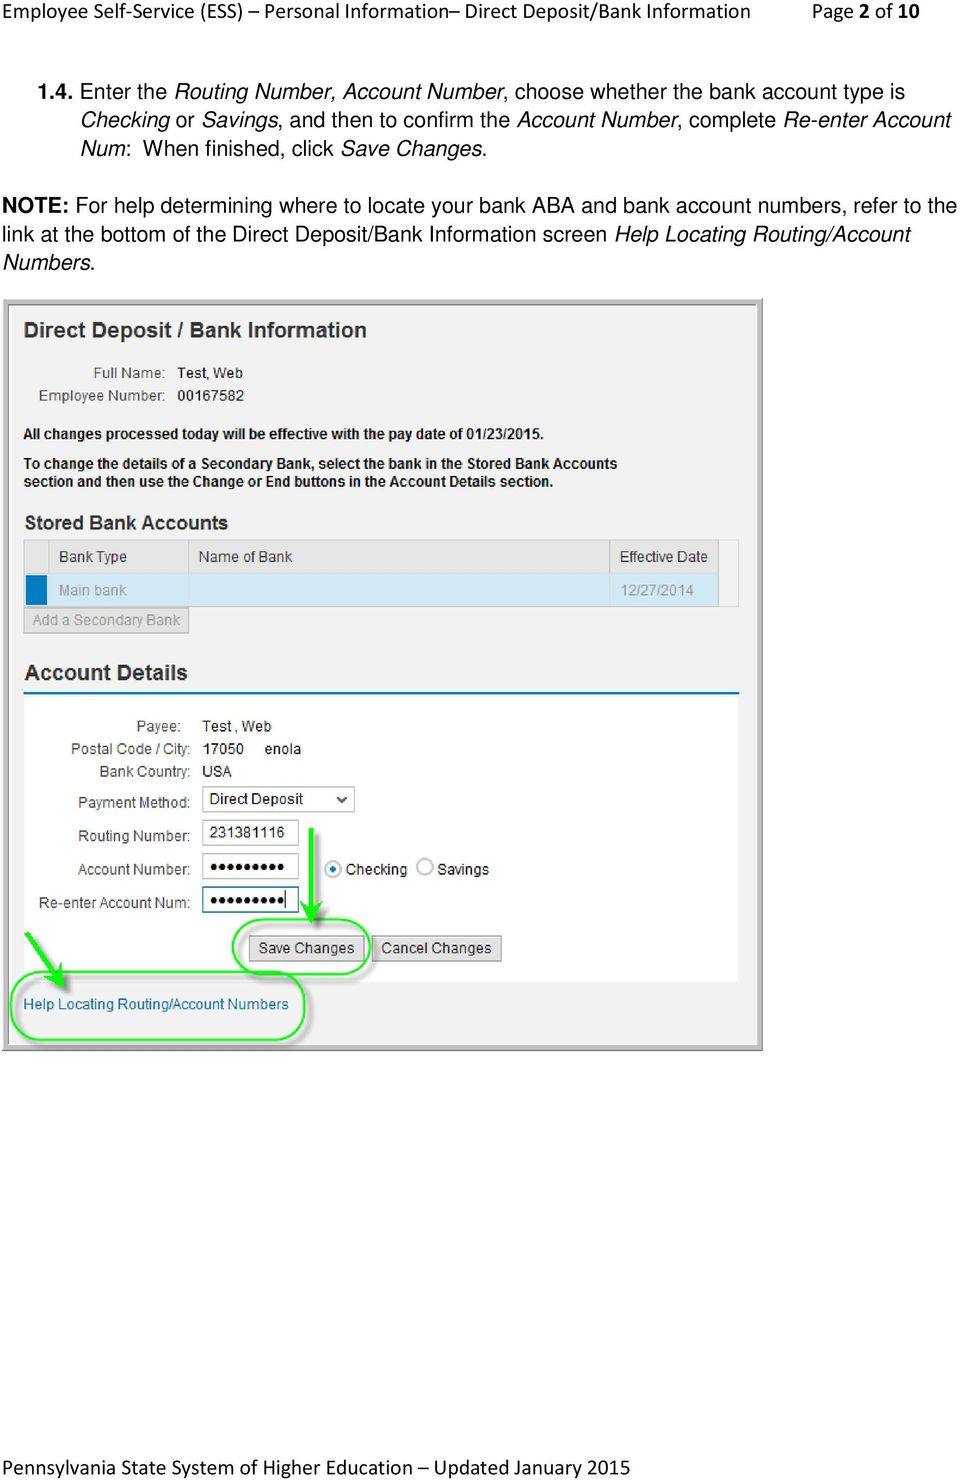 Account Number, complete Re-enter Account Num: When finished, click Save Changes.